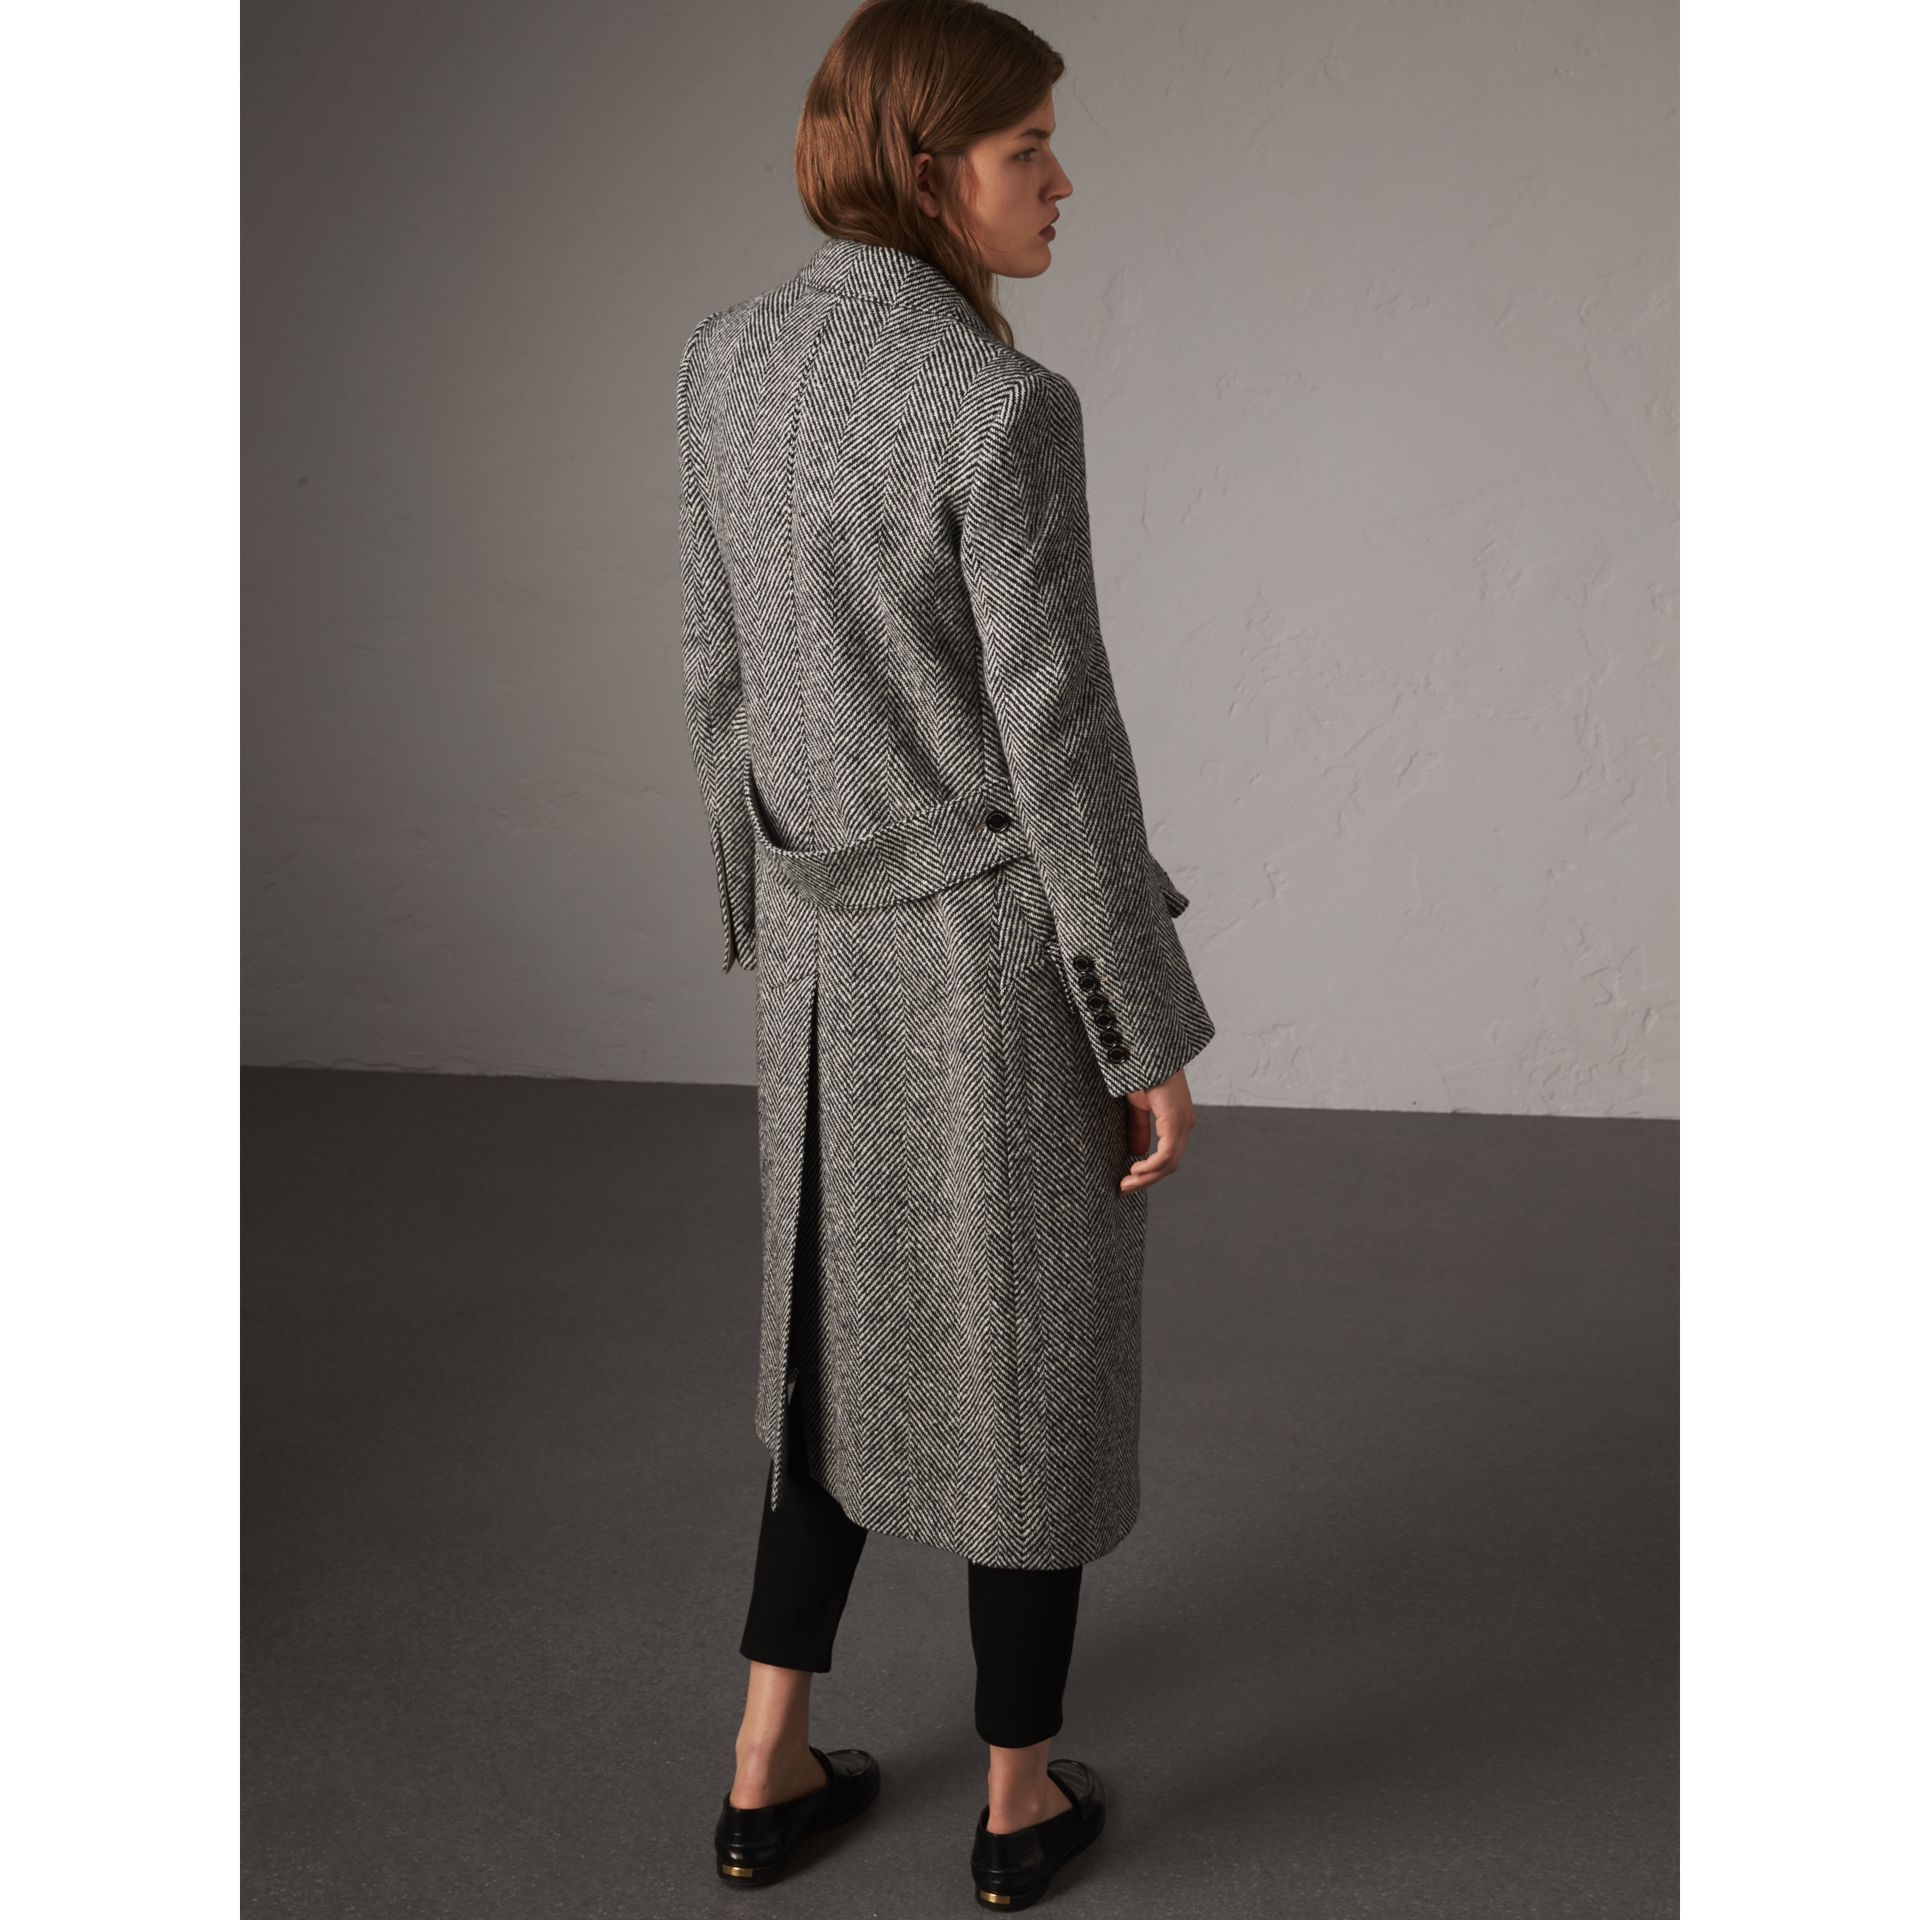 Donegal Herringbone Wool Tweed Tailored Coat in Black - Women | Burberry - gallery image 3